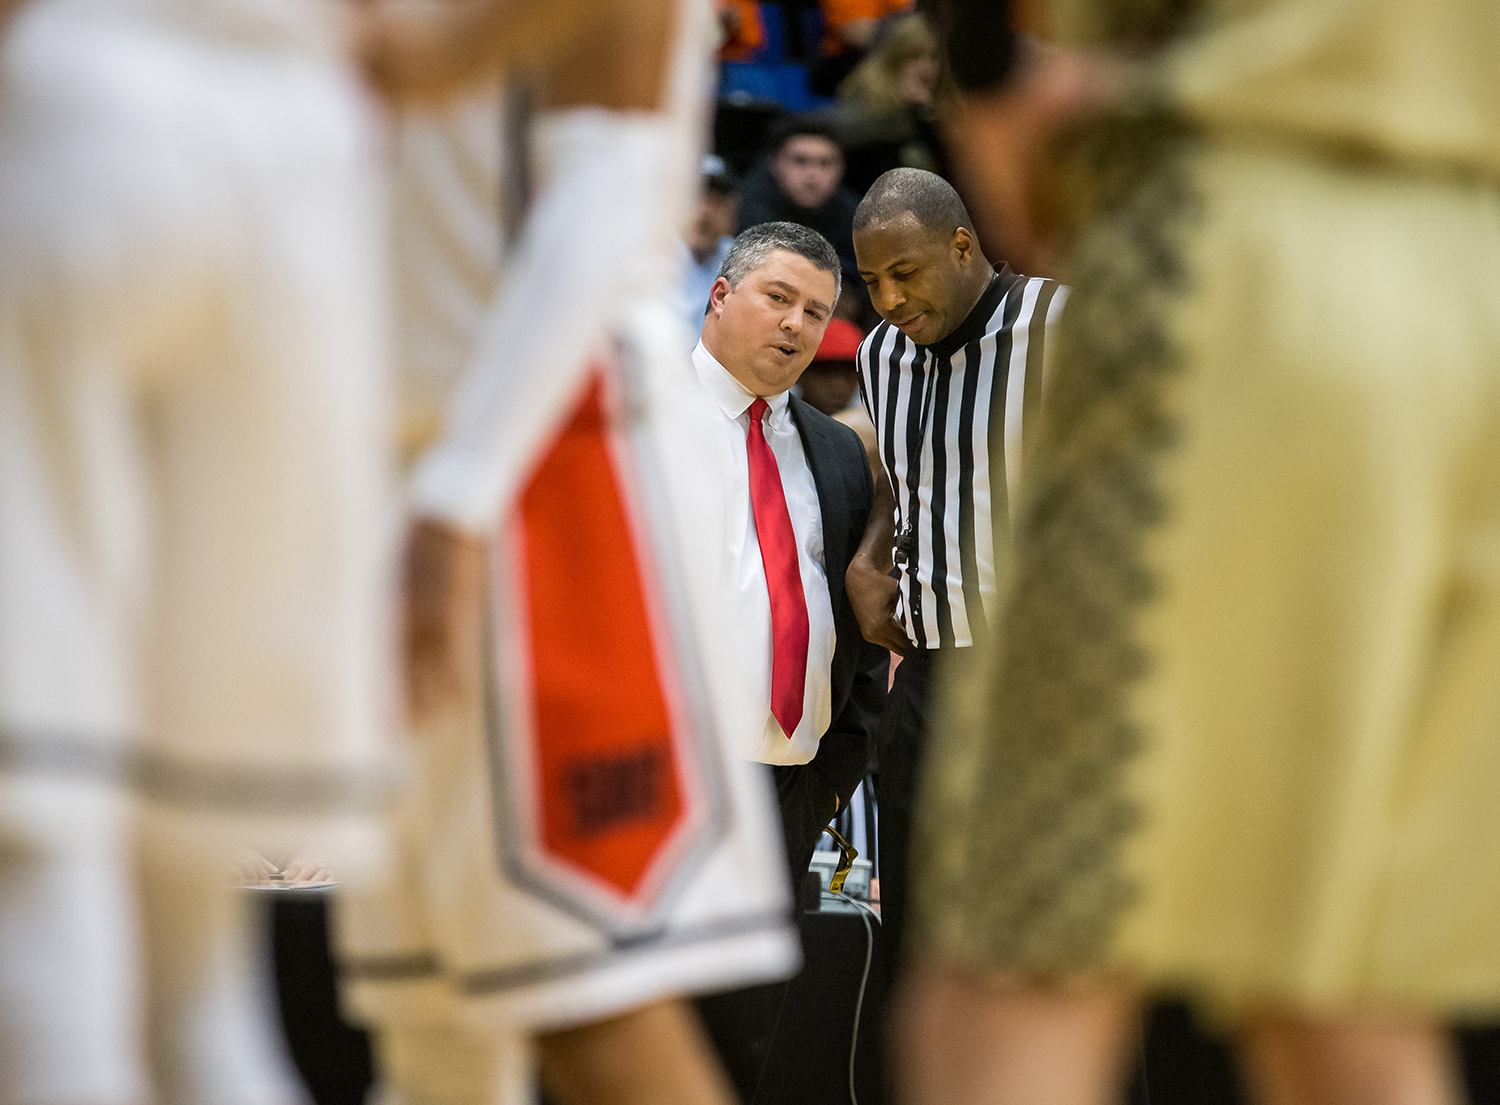 Springfield boys basketball head coach Joby Crum talks with a referee after a technical foul was called on both a Springfield and Sacred Heart-Griffin player in the fourth quarter on opening night of the Boys City Tournament at the Bank of Springfield Center, Wednesday, Jan. 16, 2019, in Springfield, Ill. [Justin L. Fowler/The State Journal-Register]